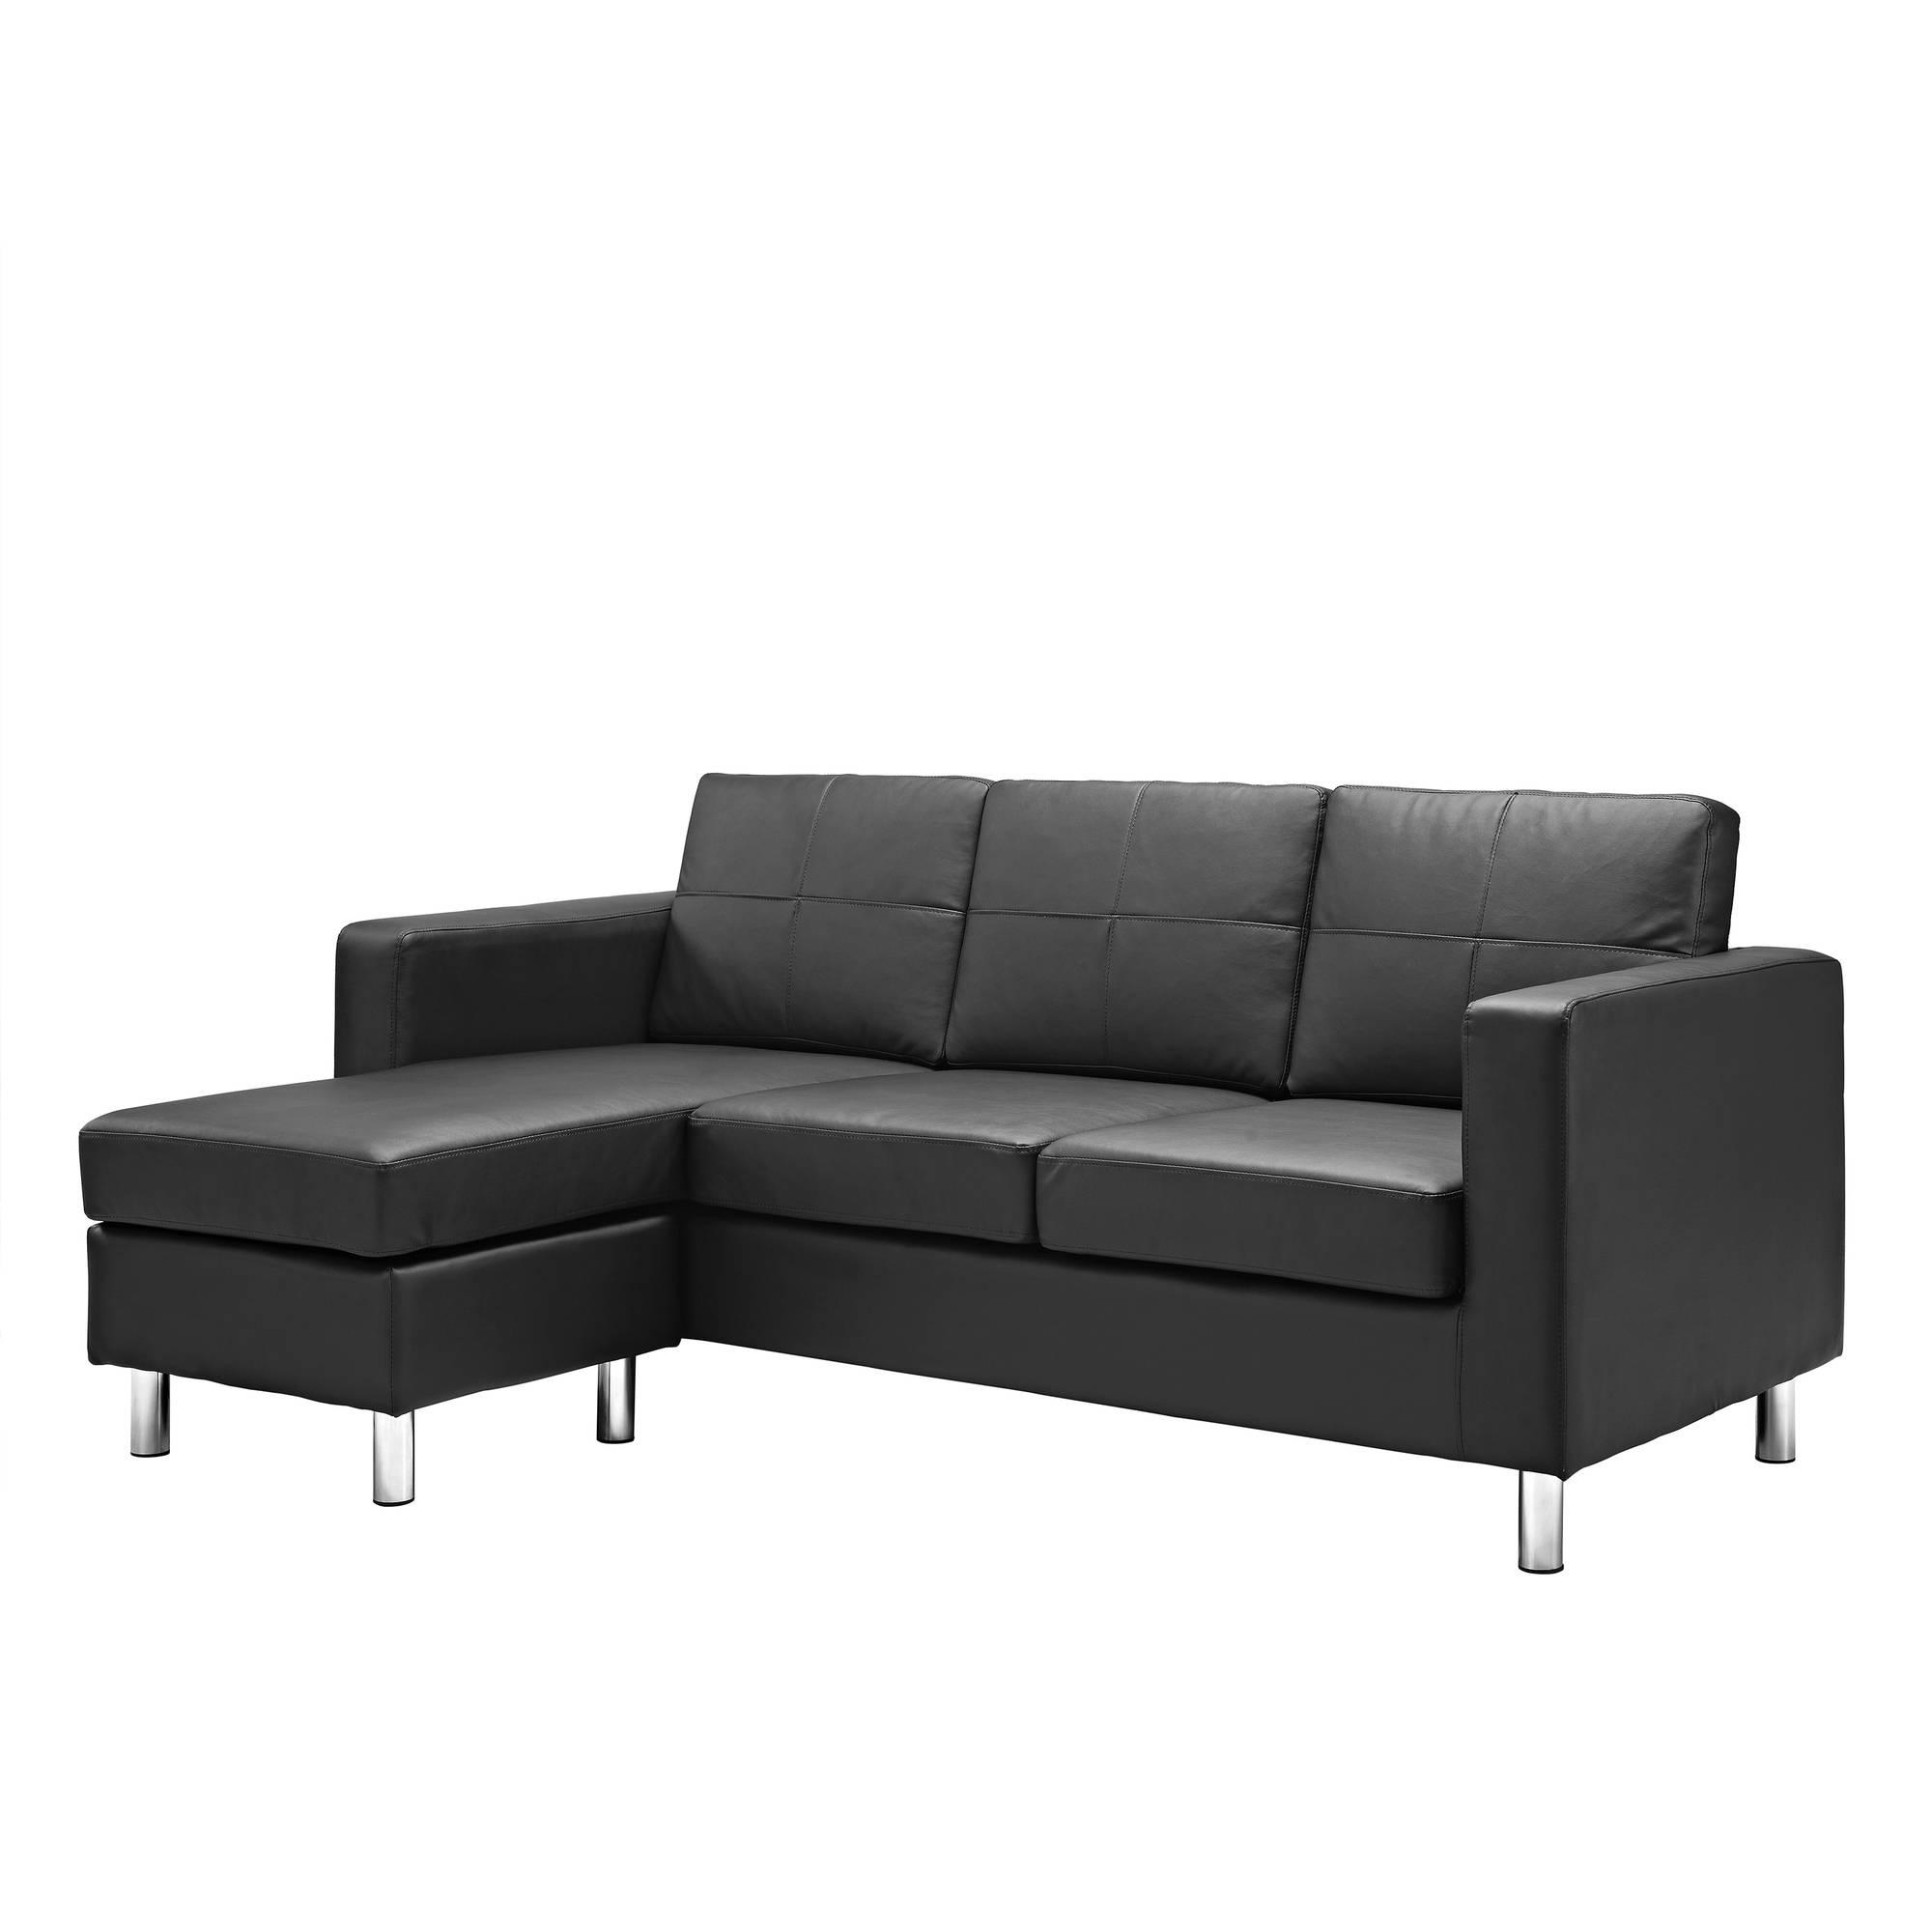 Dorel Living Small Spaces Configurable Sectional Sofa, Multiple In Tiny Sofas (View 6 of 20)